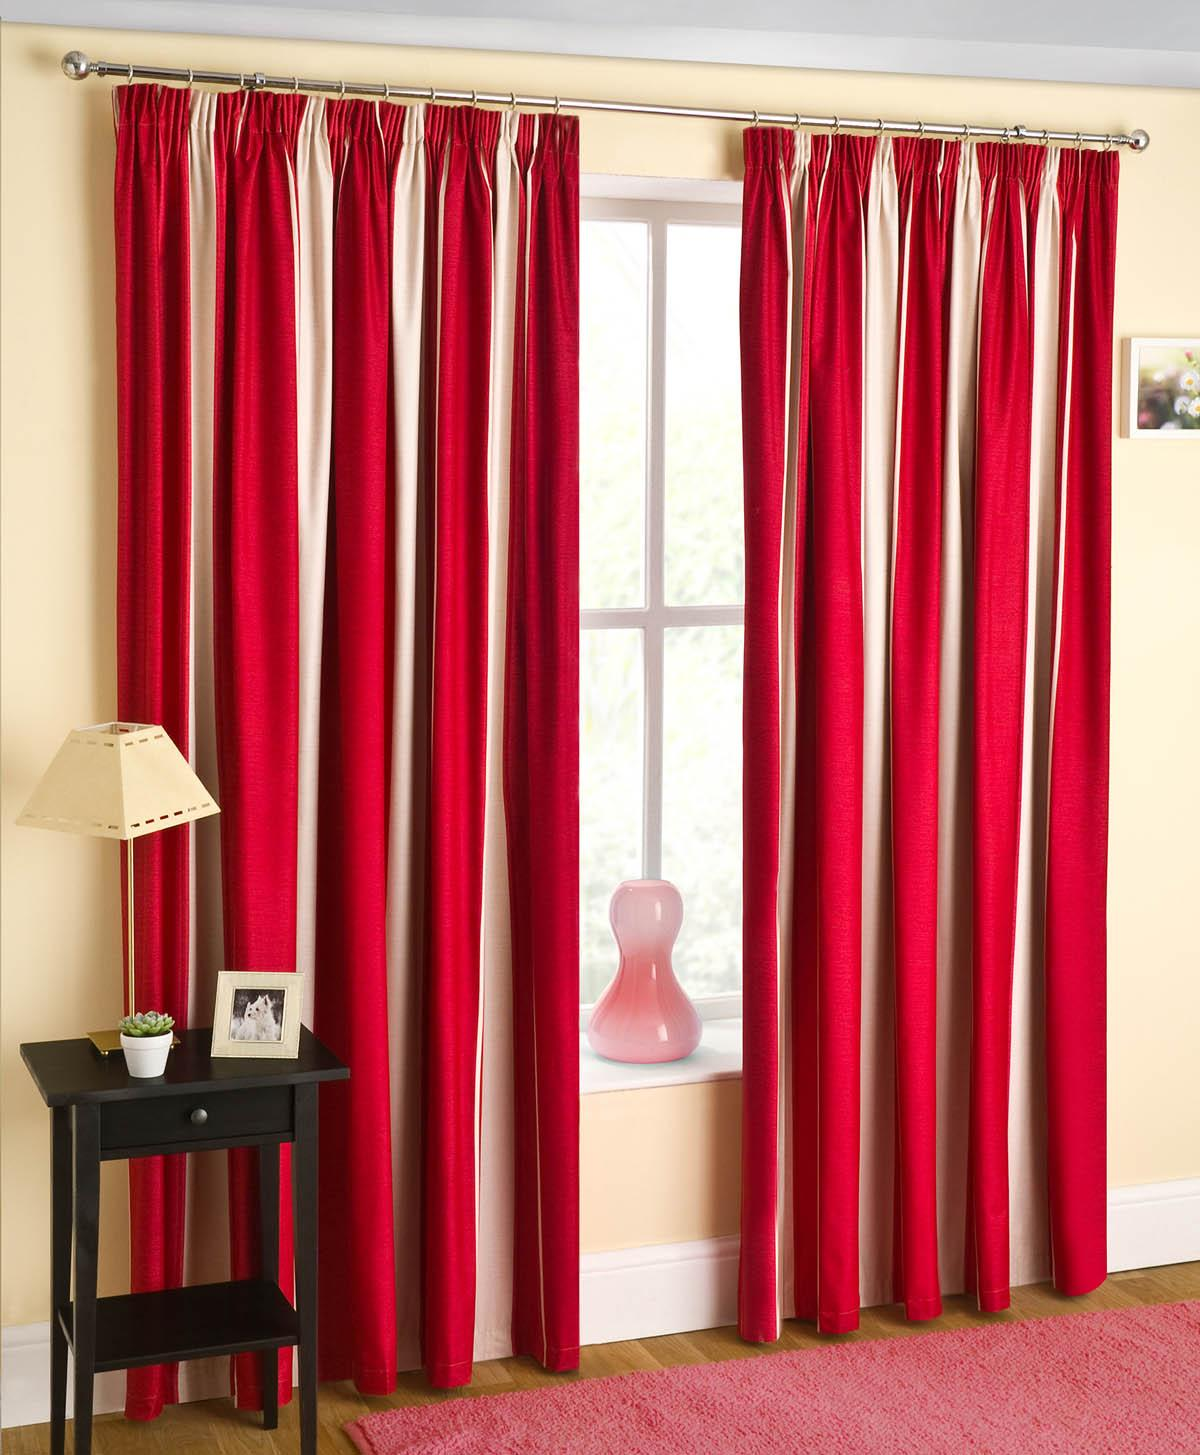 Cheap red curtains - Twilight Ready Made Blackout Curtain Red Luxury Headed Curtains